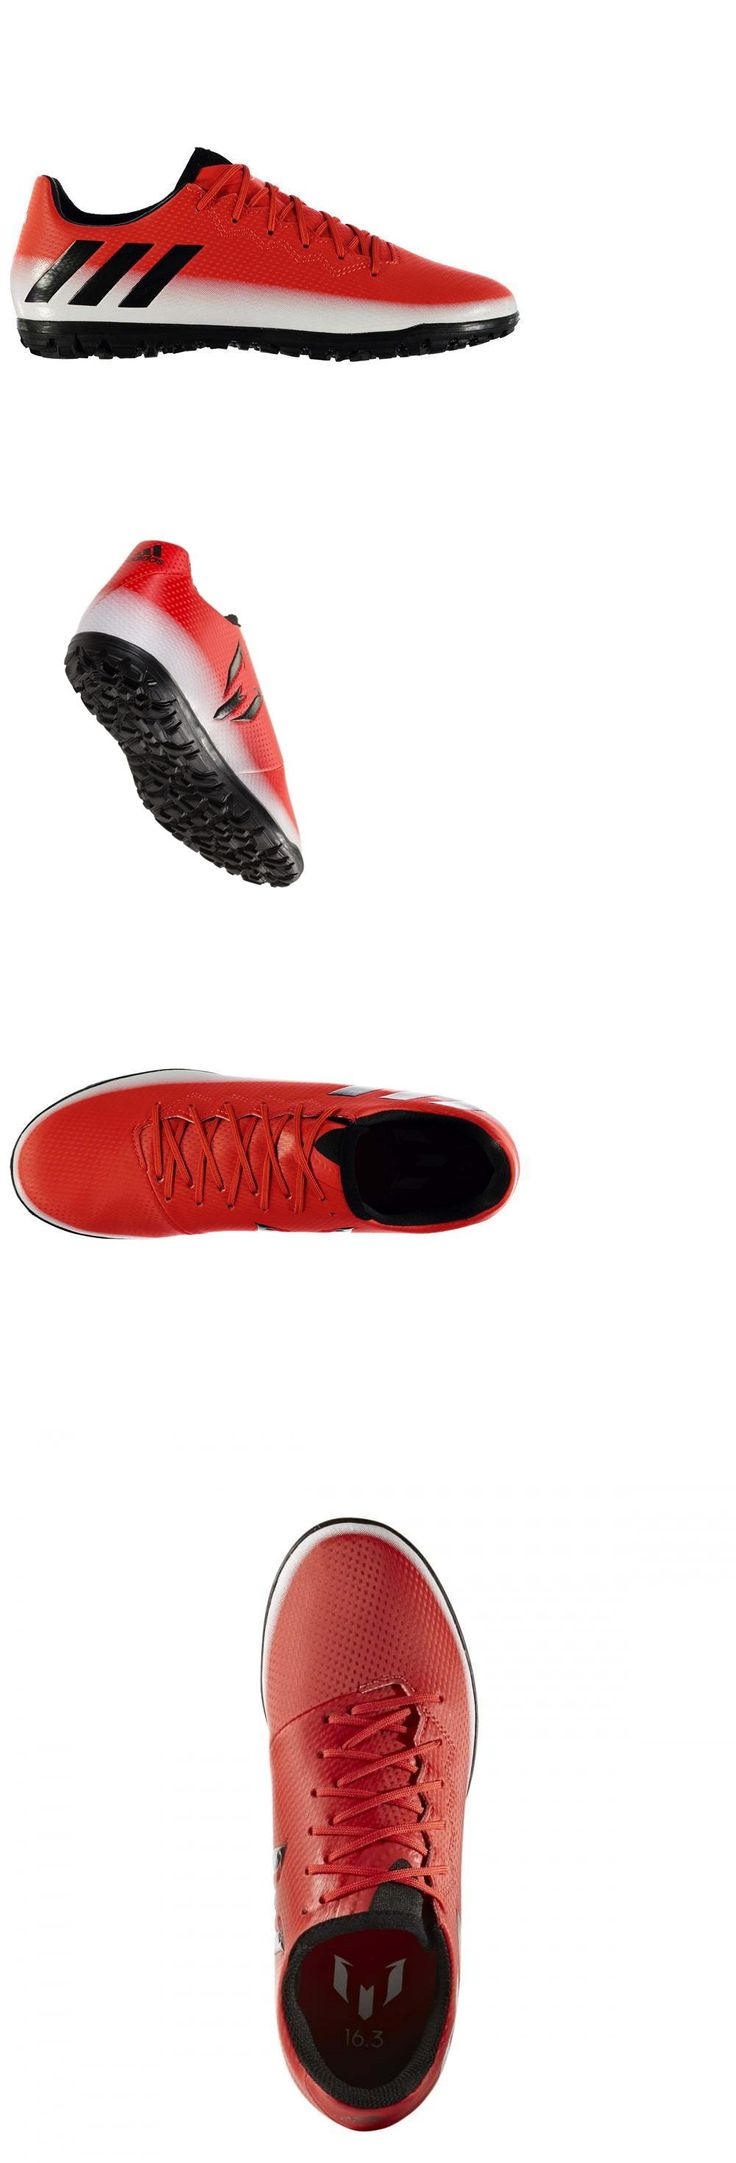 Youth 159177: Adidas New 2016 Messi 16.3 Tf Junior Soccer Shoes Red Bb5646 -> BUY IT NOW ONLY: $49 on eBay!